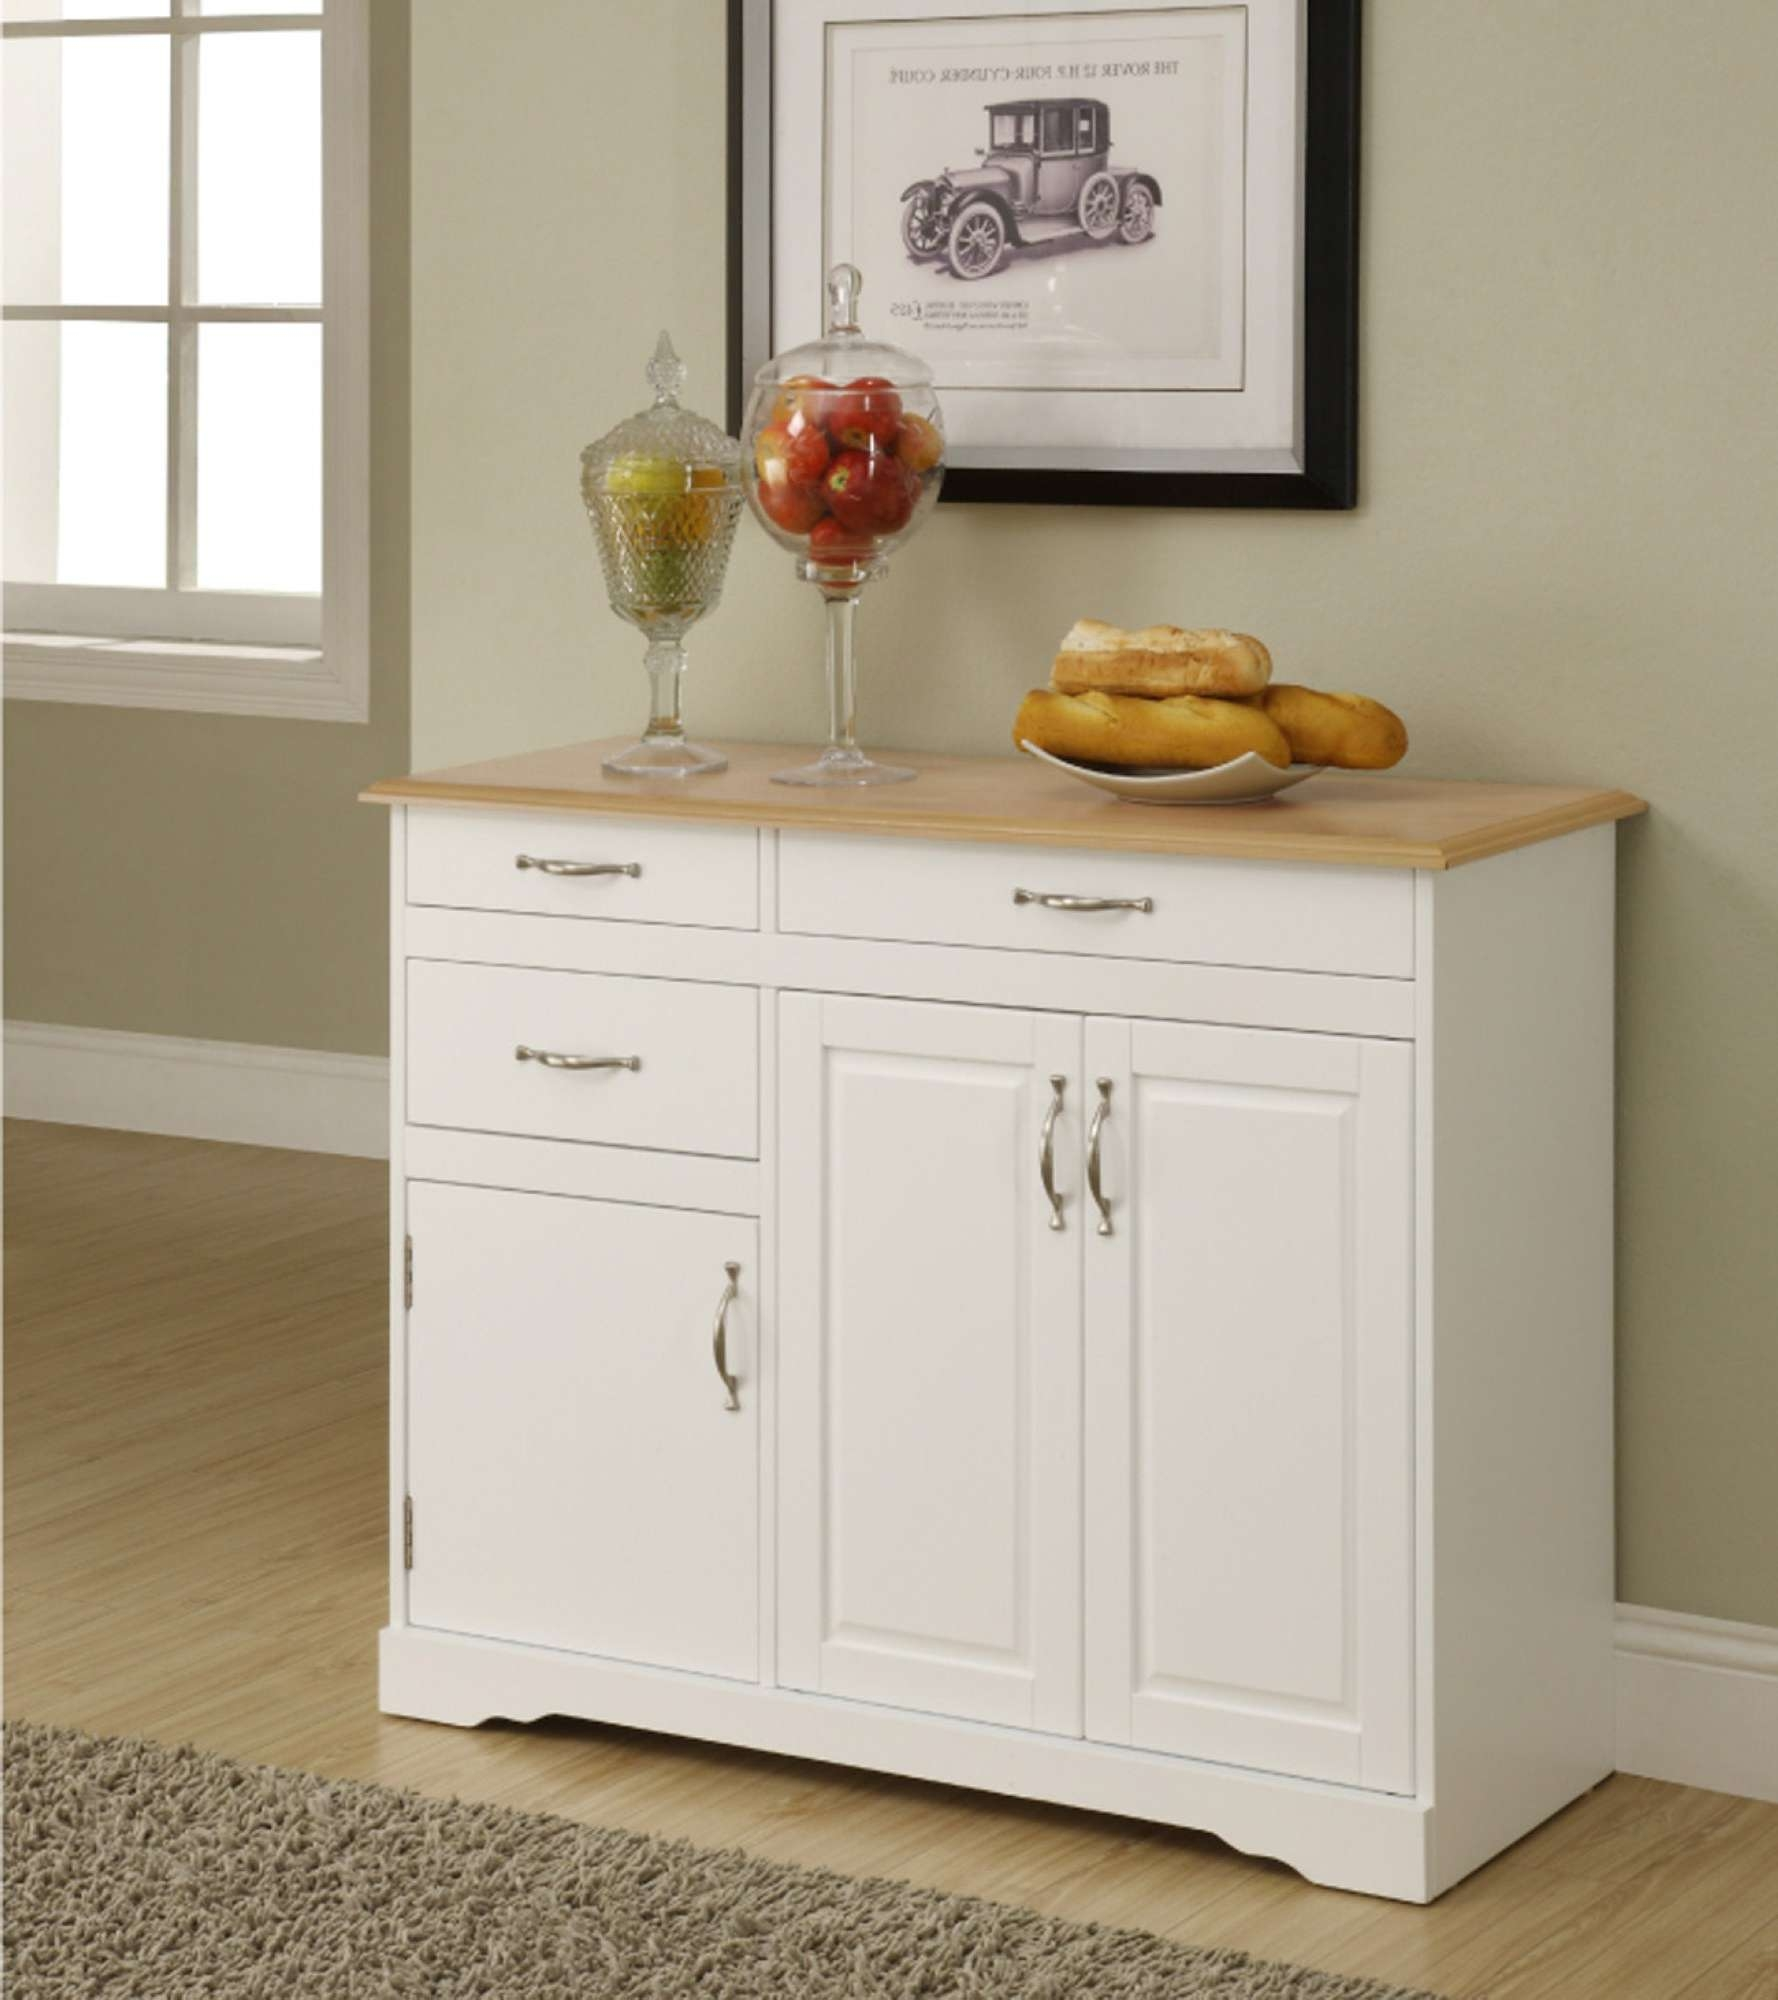 Sideboards: Marvellous Kitchen Credenza Small Credenza Cabinet Intended For Diy Sideboards (View 19 of 20)